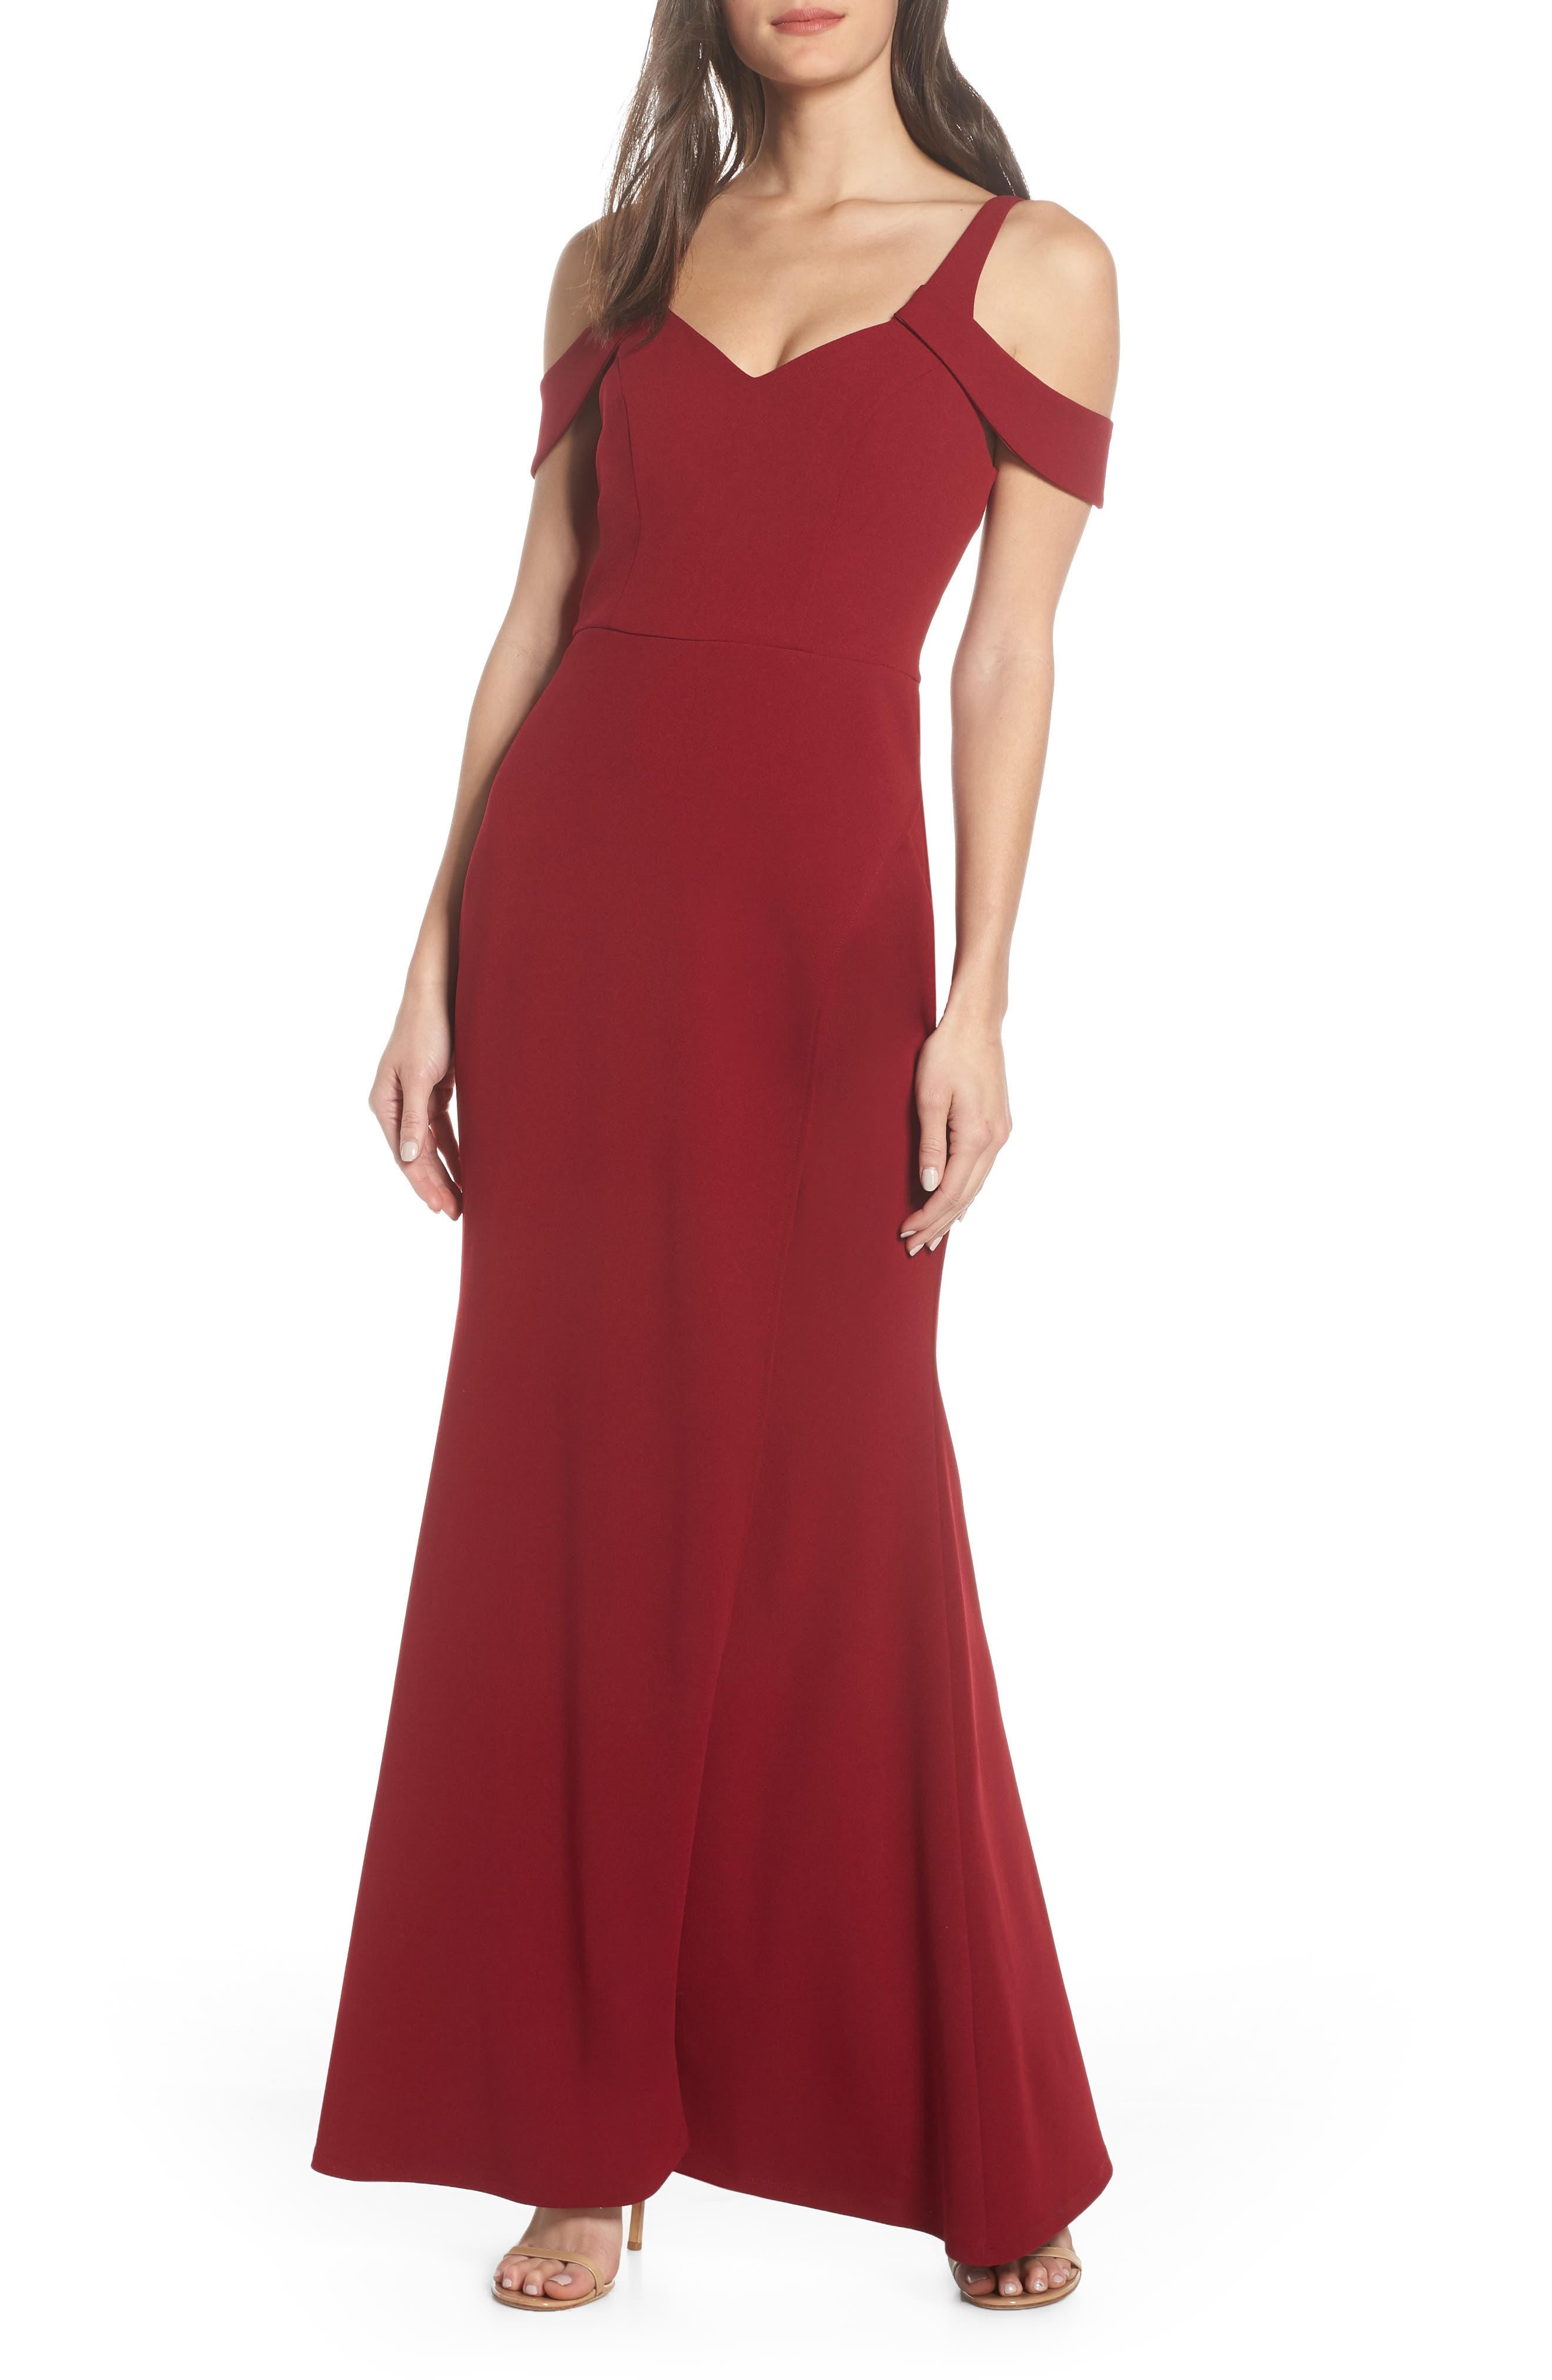 Sequin Hearts Scuba Crepe Cold Shoulder Evening Dress, Red